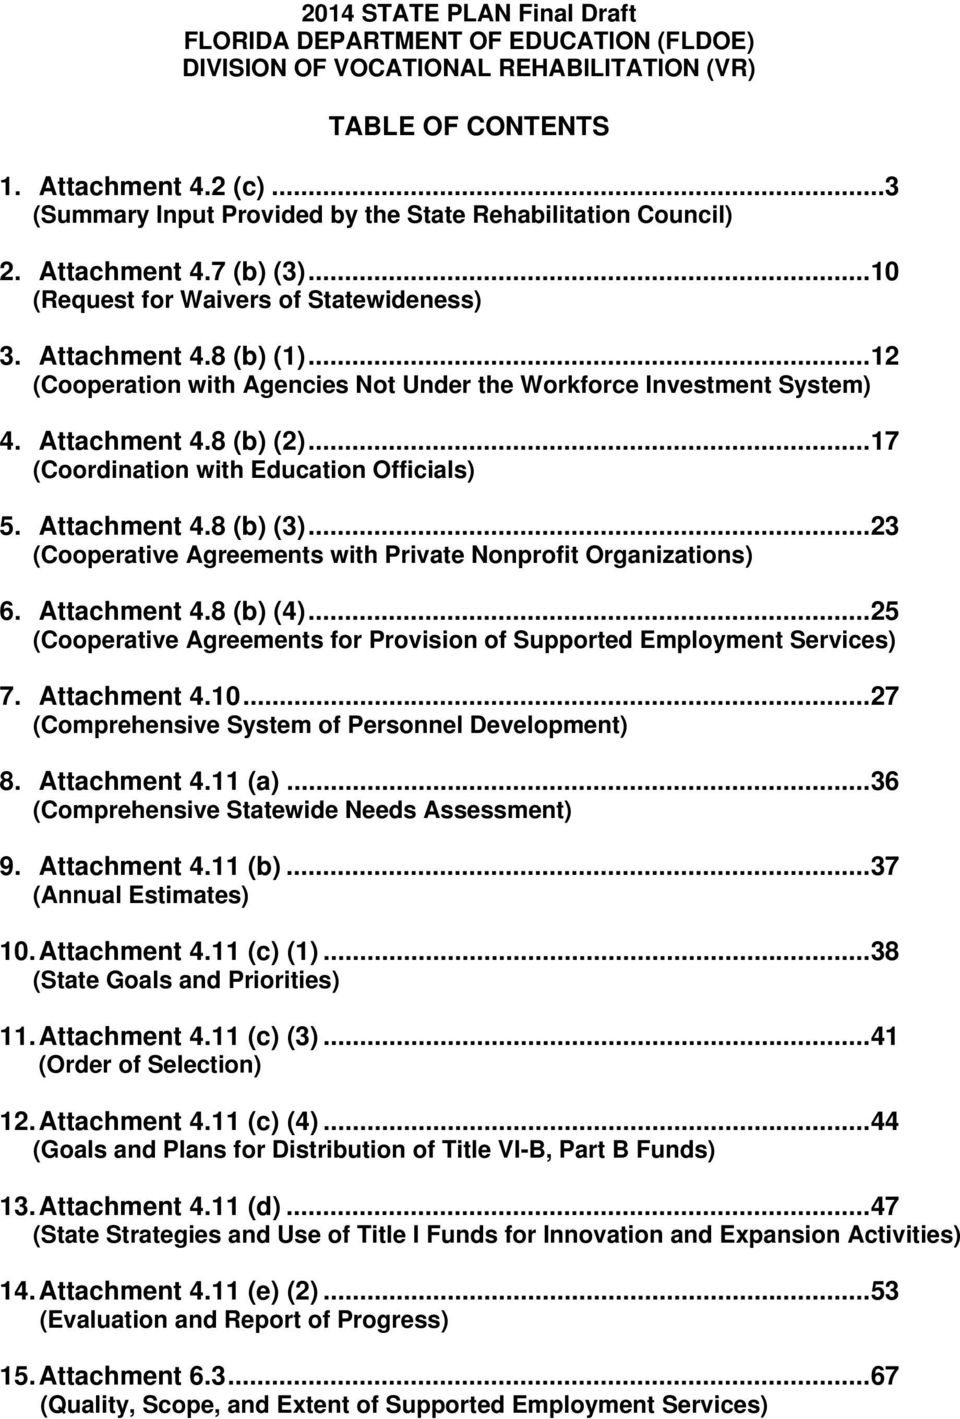 .. 23 (Cooperative Agreements with Private Nonprofit Organizations) 6. Attachment 4.8 (b) (4)... 25 (Cooperative Agreements for Provision of Supported Employment Services) 7. Attachment 4.10.